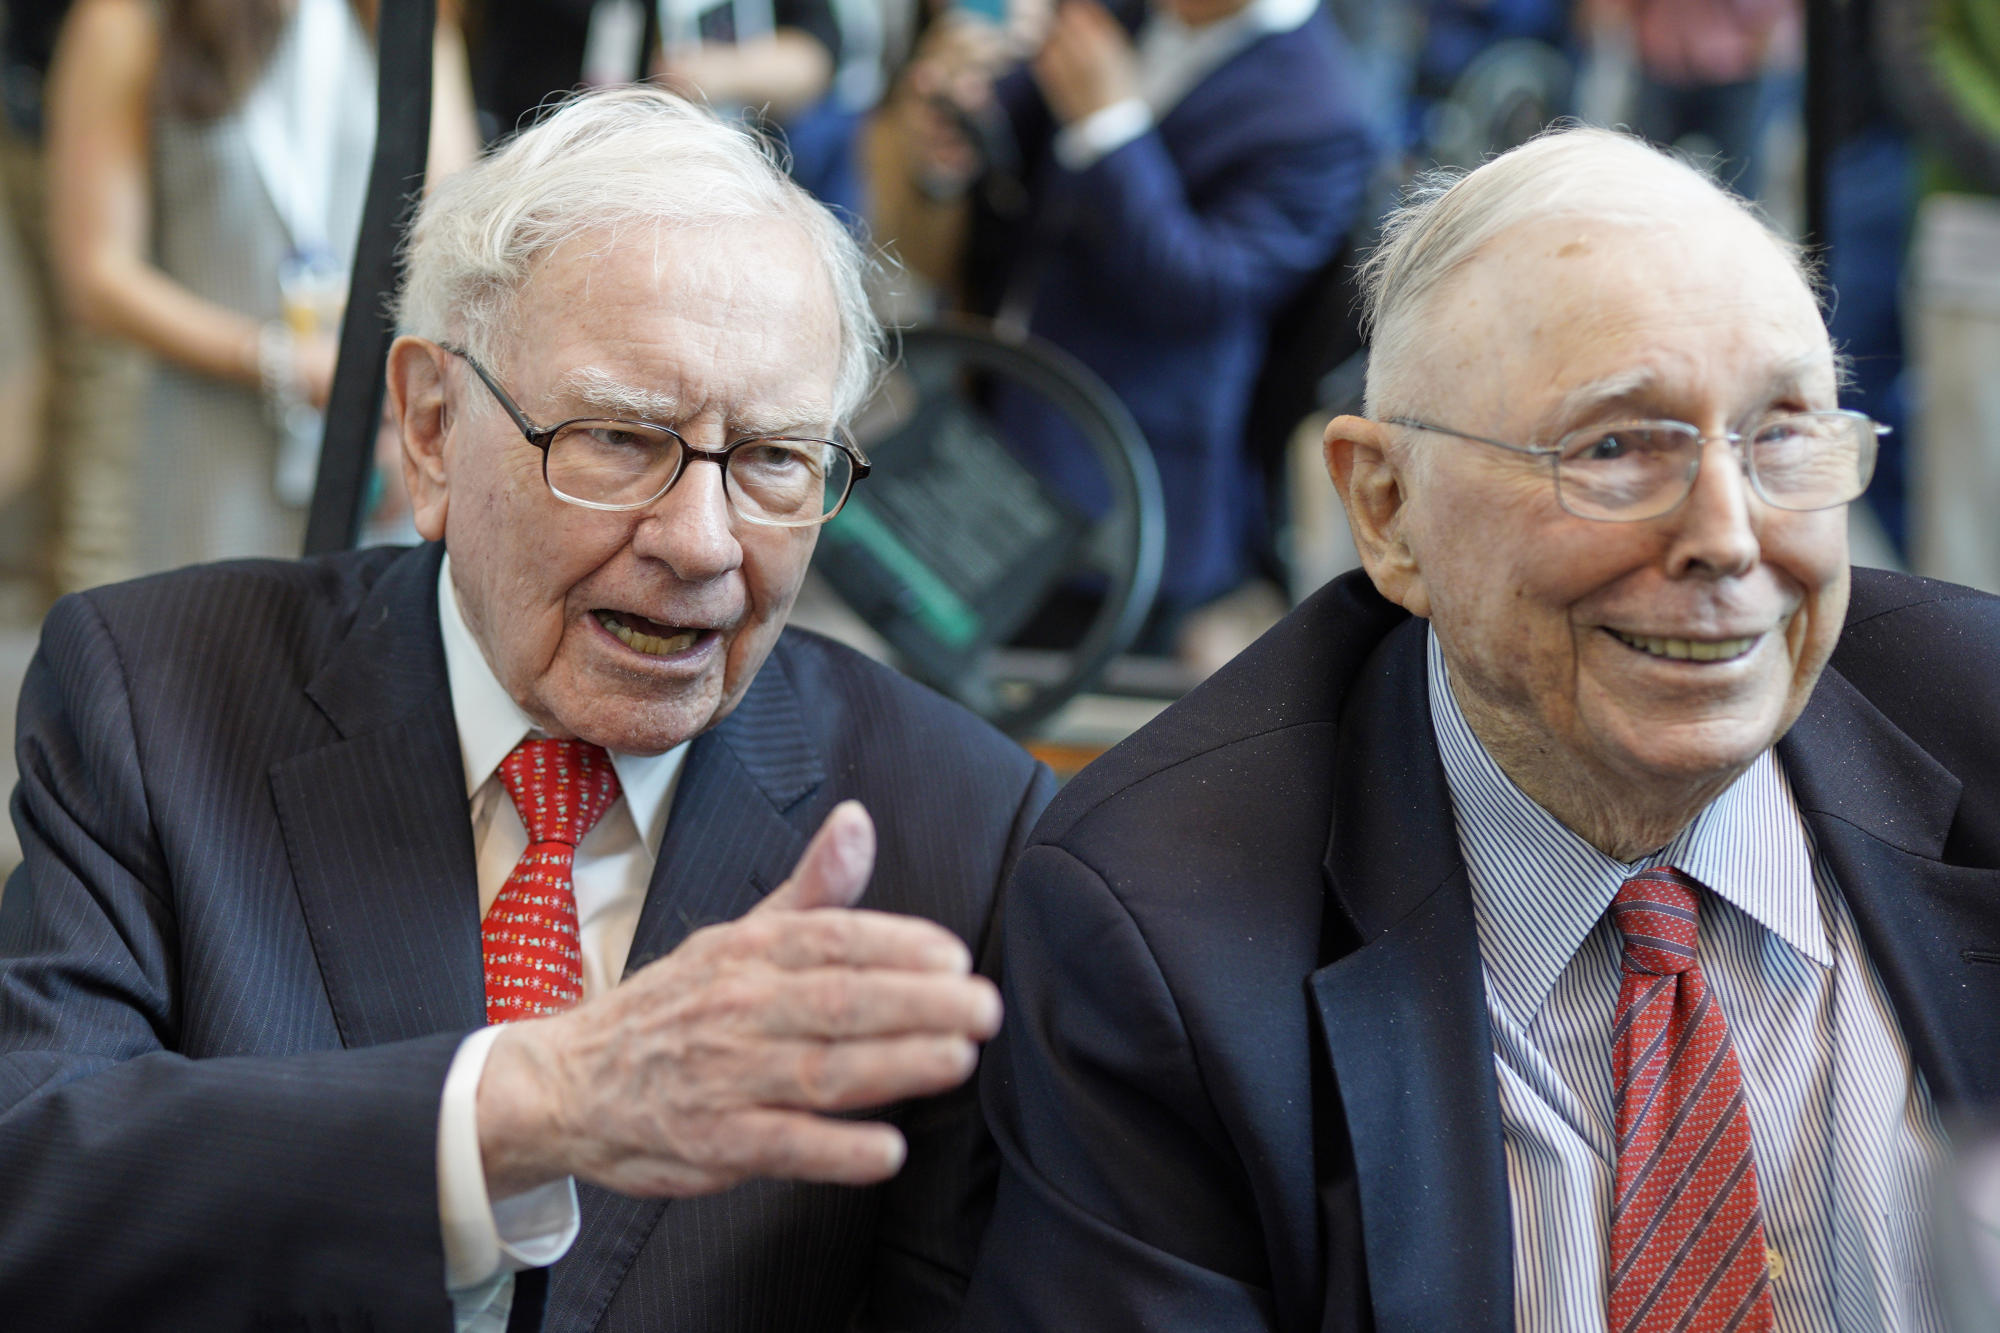 Berkshire Hathaway Annual Meeting 2021: What to expect & how to watch – Yahoo Finance